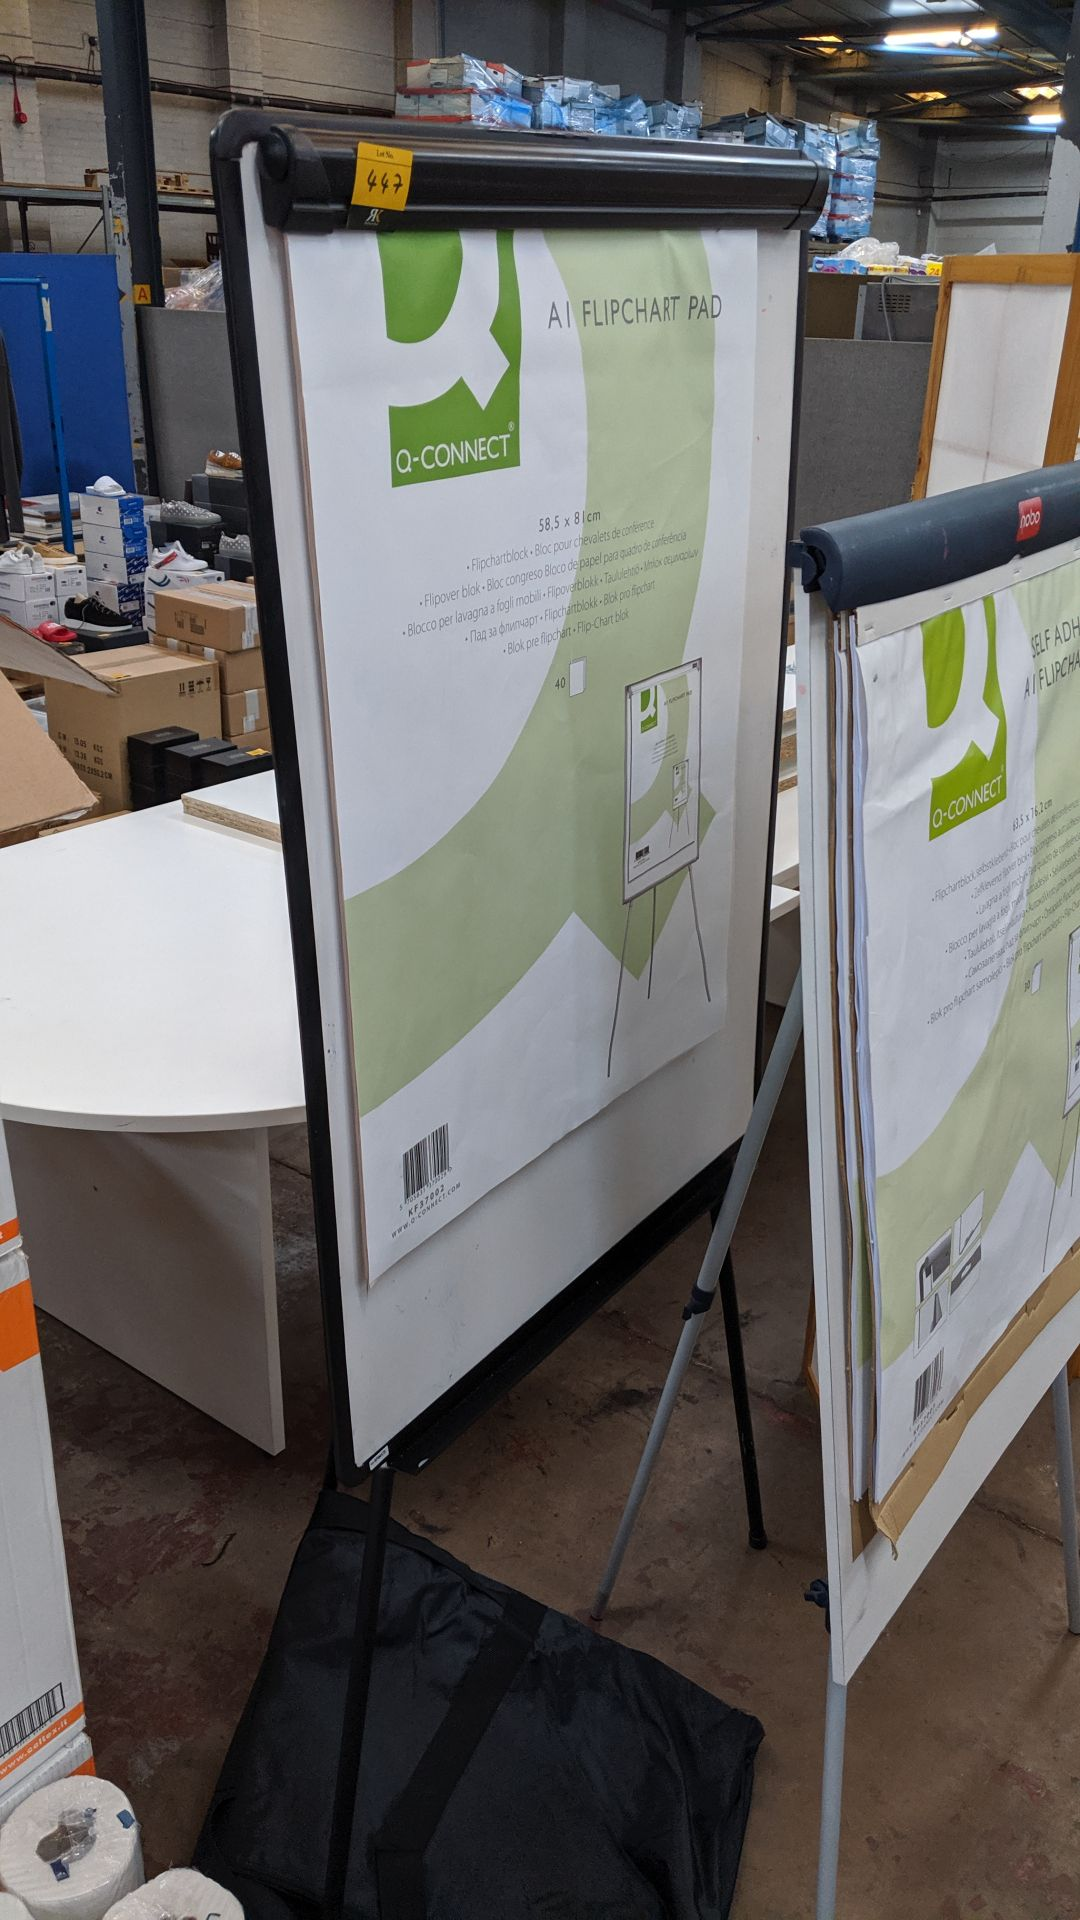 Lot 447 - Flipchart/whiteboard including carry case. This is one of a large number of lots used/owned by One